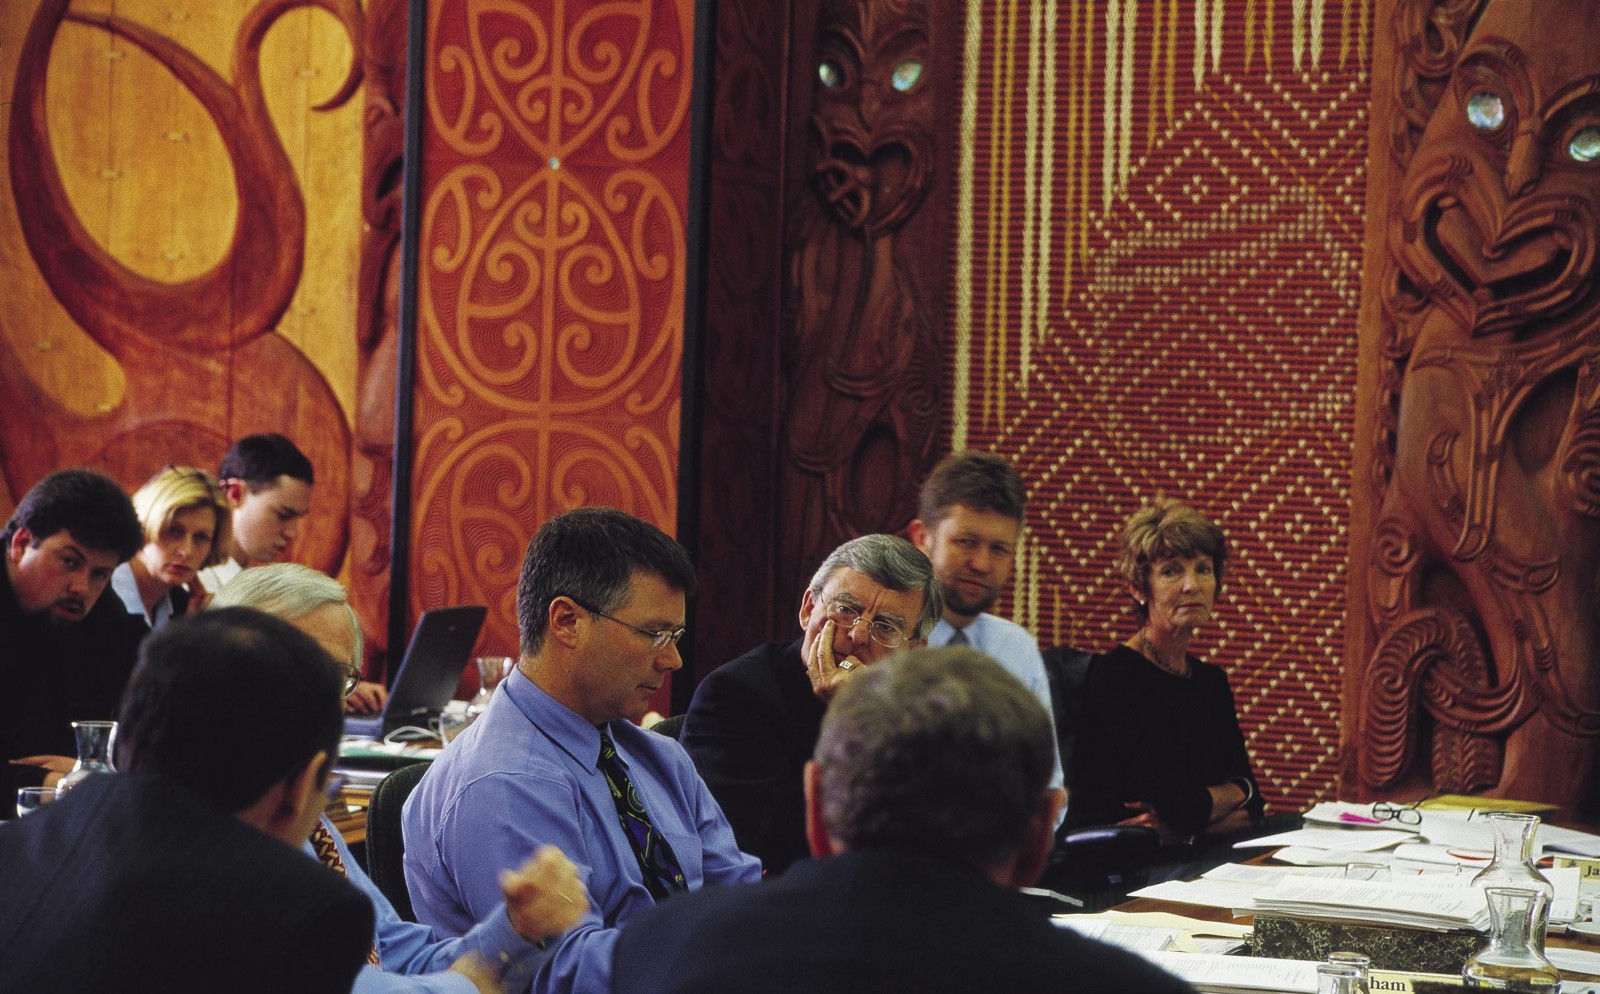 Under the inscrutable gaze of ancestors, representatives of the Public Trust Office are questioned during a select-committee hearing in the Maori Affairs Select Committee Room, named Maui Tikitiki a Taranga. While the common perception of Parliament is of rhetorical cut-and-thrust in the debating chamber, the less visible work of select committees is at least as important. The 17 committees, on each of which 8–10 Members of Parliament serve, examine legislation, review public expenditure, hear petitions, conduct inquiries and more.